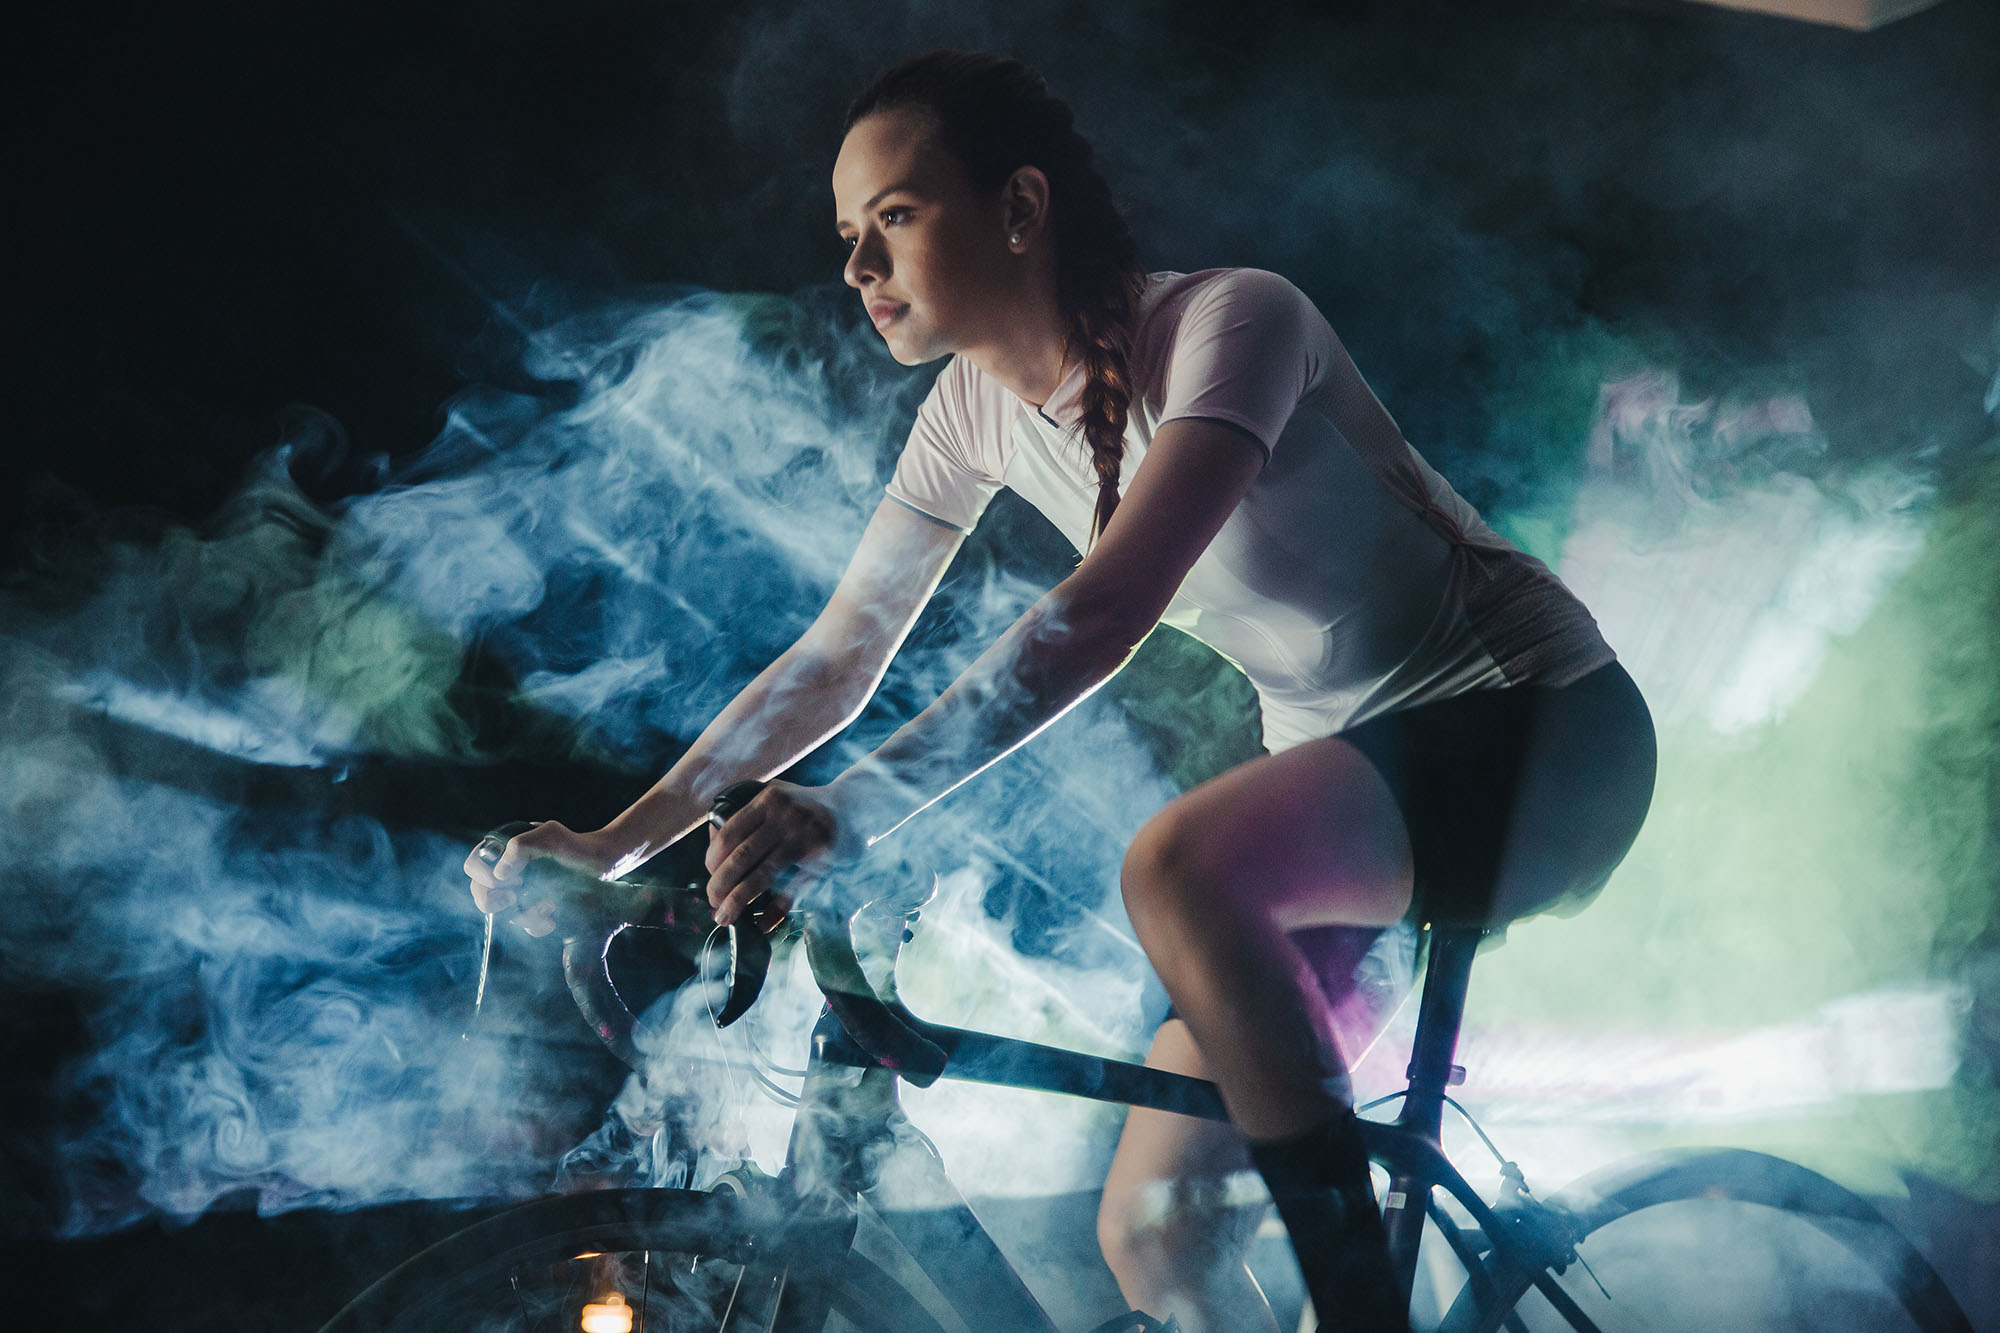 What Are The Best Indoor Cycling Apps to Make You a Better Cyclist in 2021?